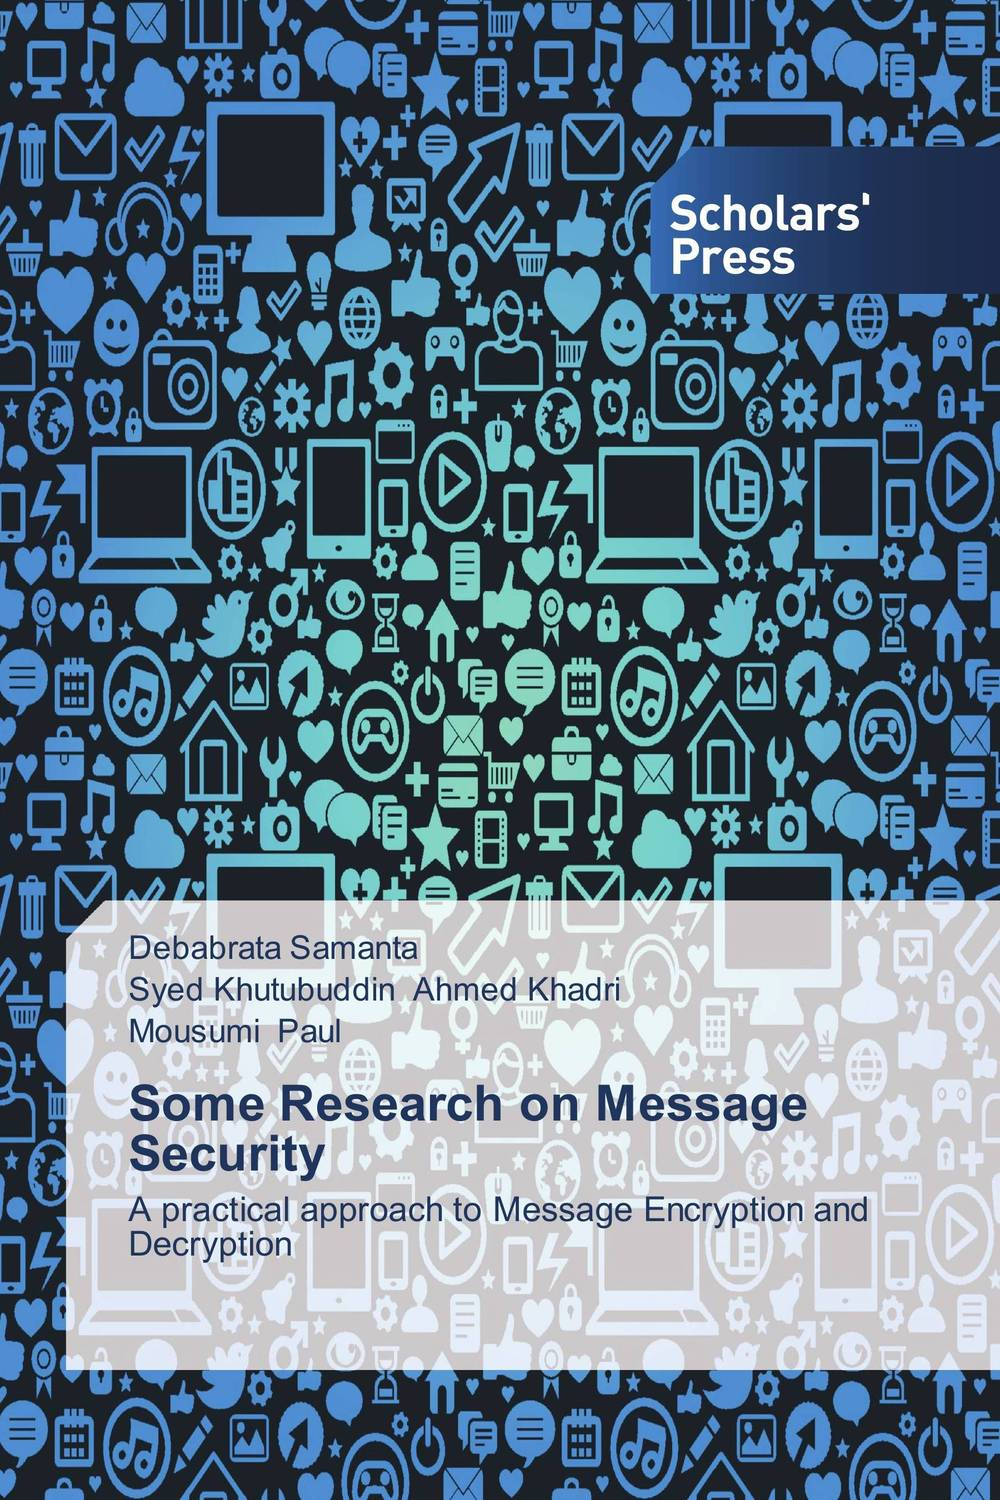 Some Research on Message Security 30pcs in one postcard take a walk on the go dubai arab emirates christmas postcards greeting birthday message cards 10 2x14 2cm